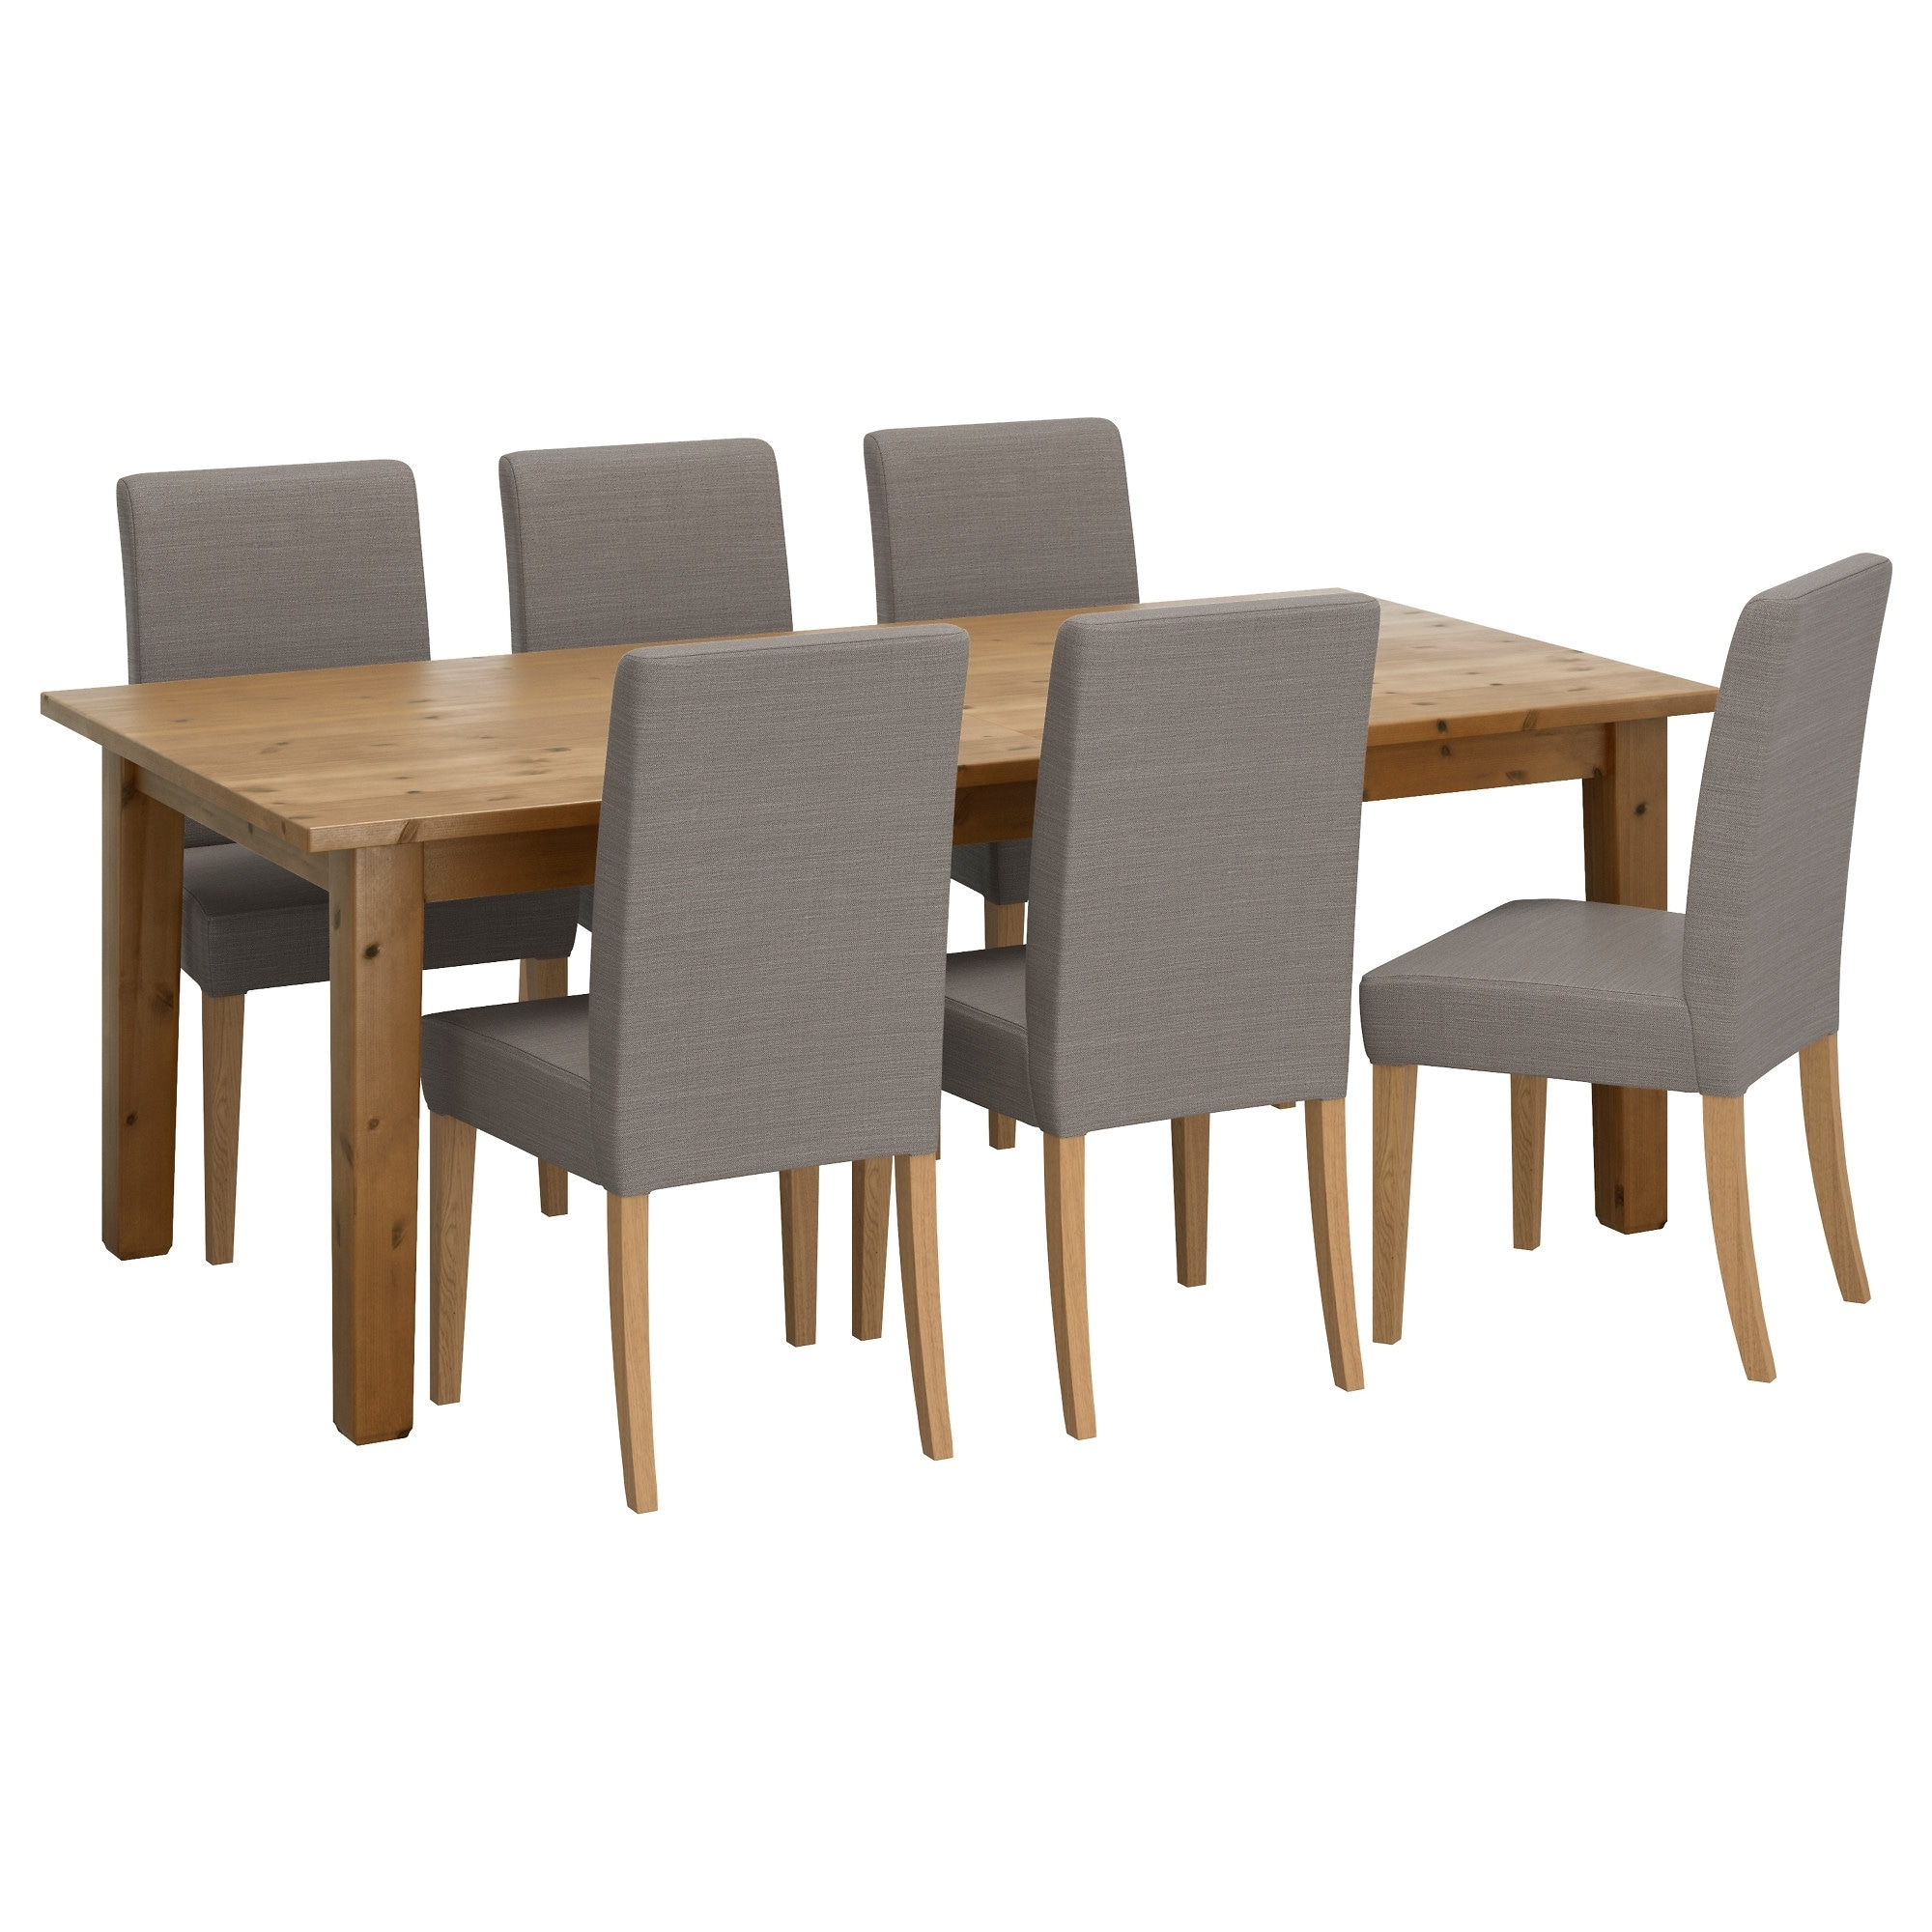 Most Up To Date 6 Seat Dining Table Sets With Regard To 6 Seater Dining Table & Chairs (View 12 of 25)